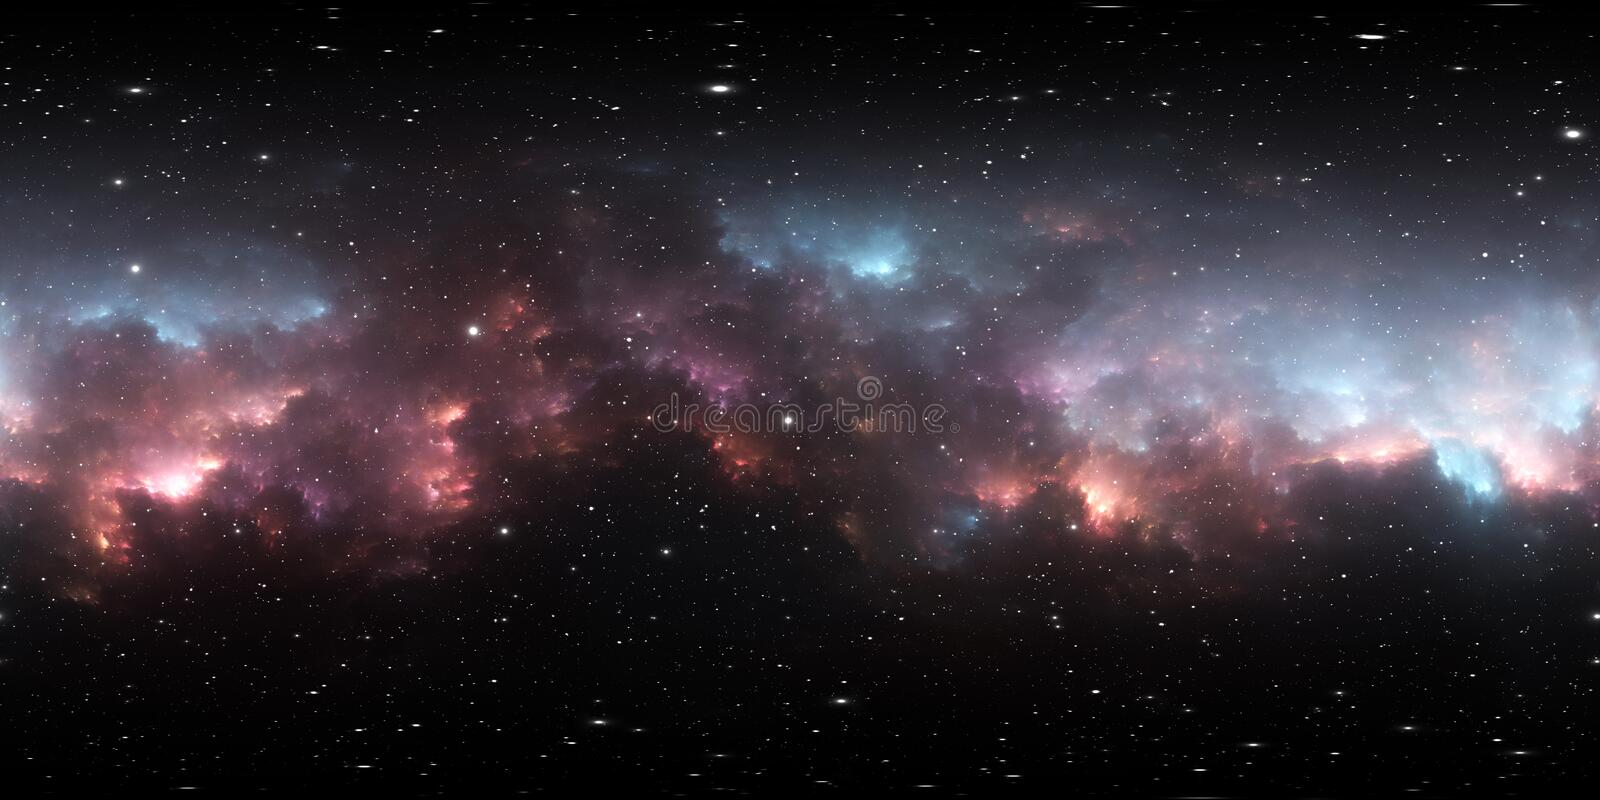 360 degree space background with nebula and stars, equirectangular projection, environment map. HDRI spherical panorama royalty free illustration